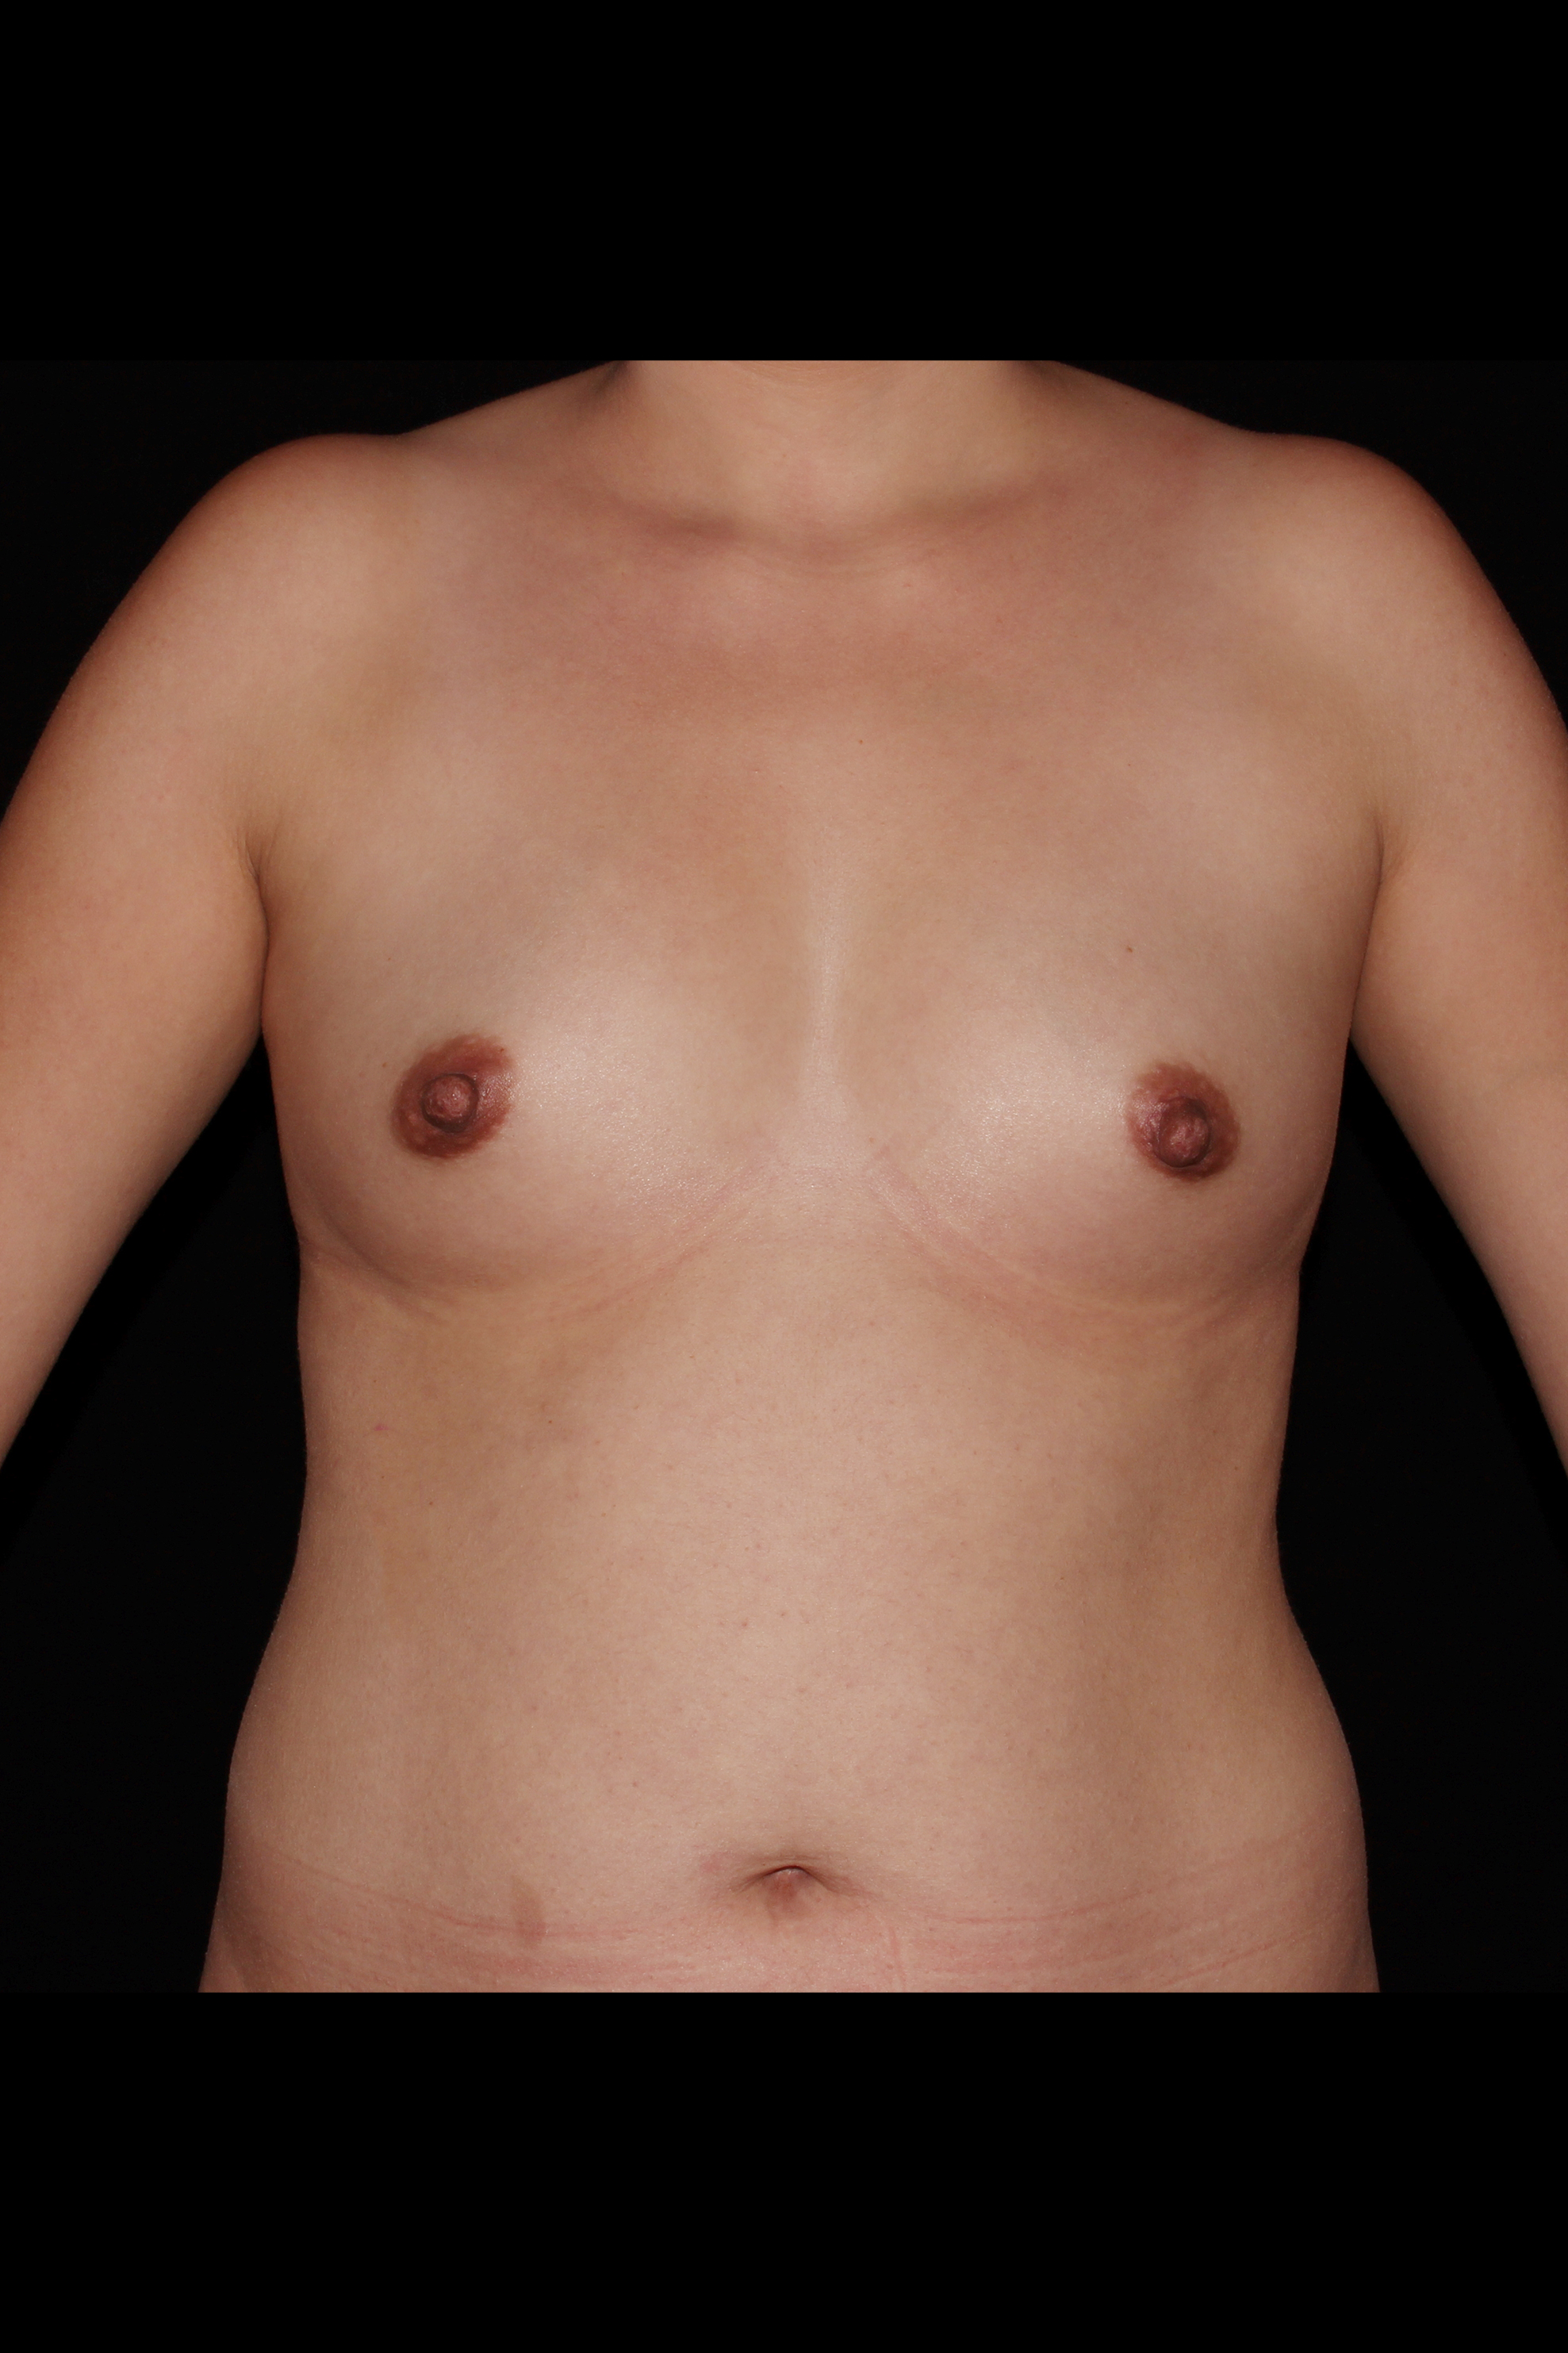 Before Breast Augmentation - 6 months post-op